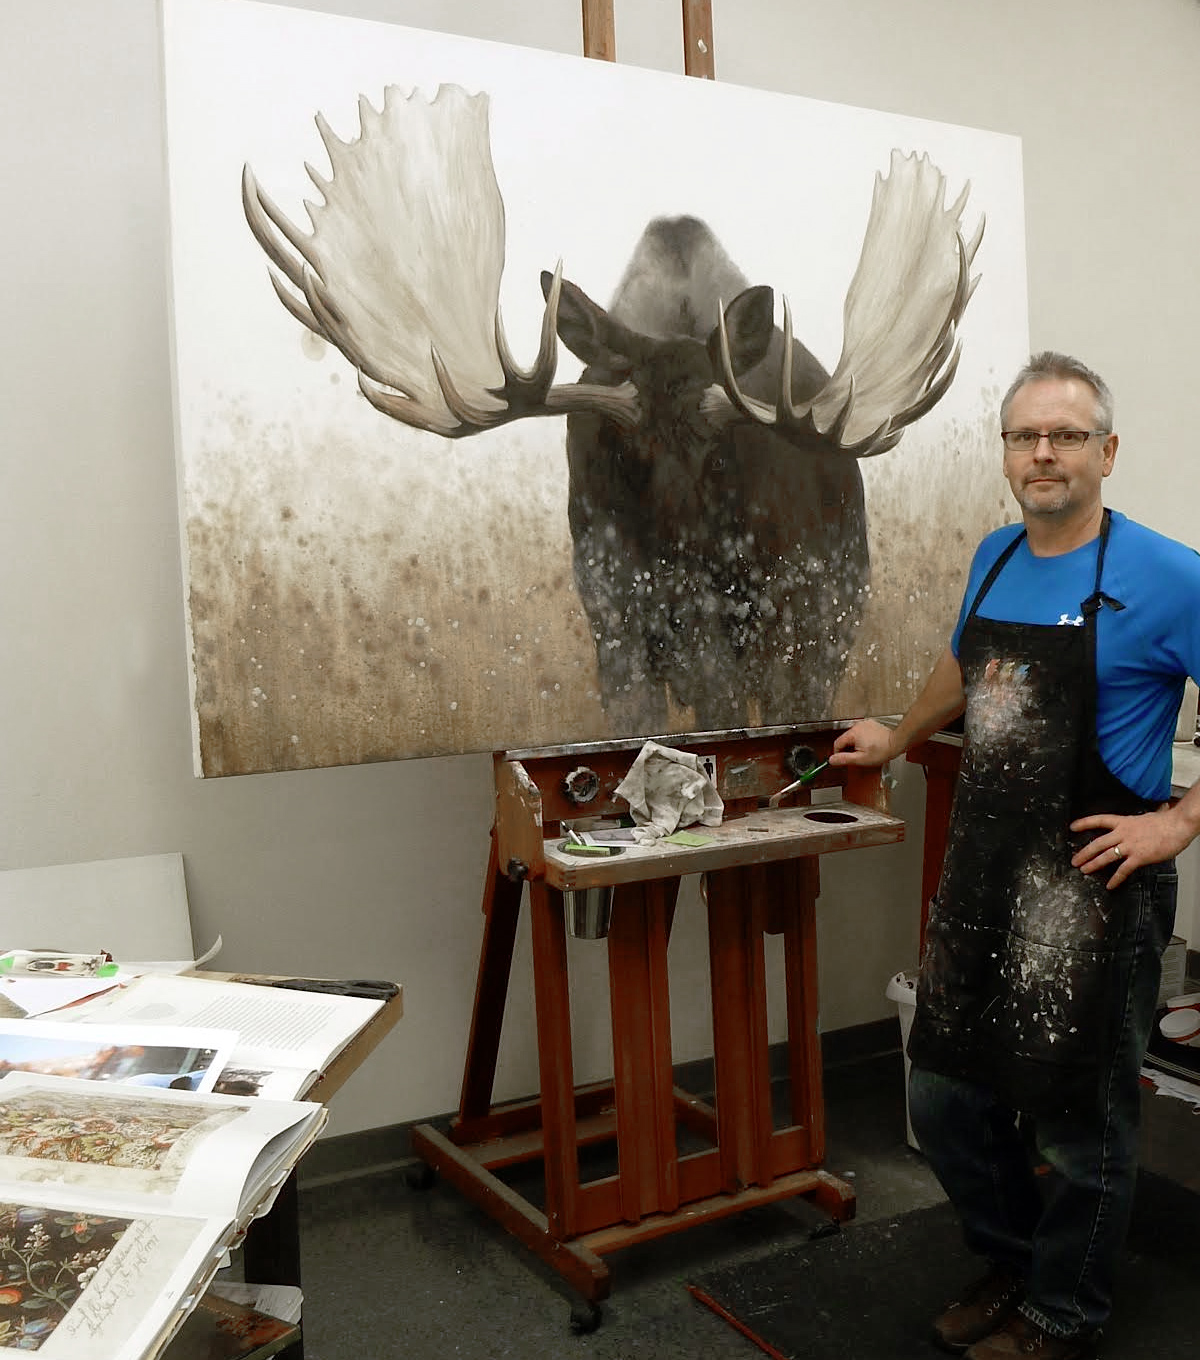 James Wiens in his studio